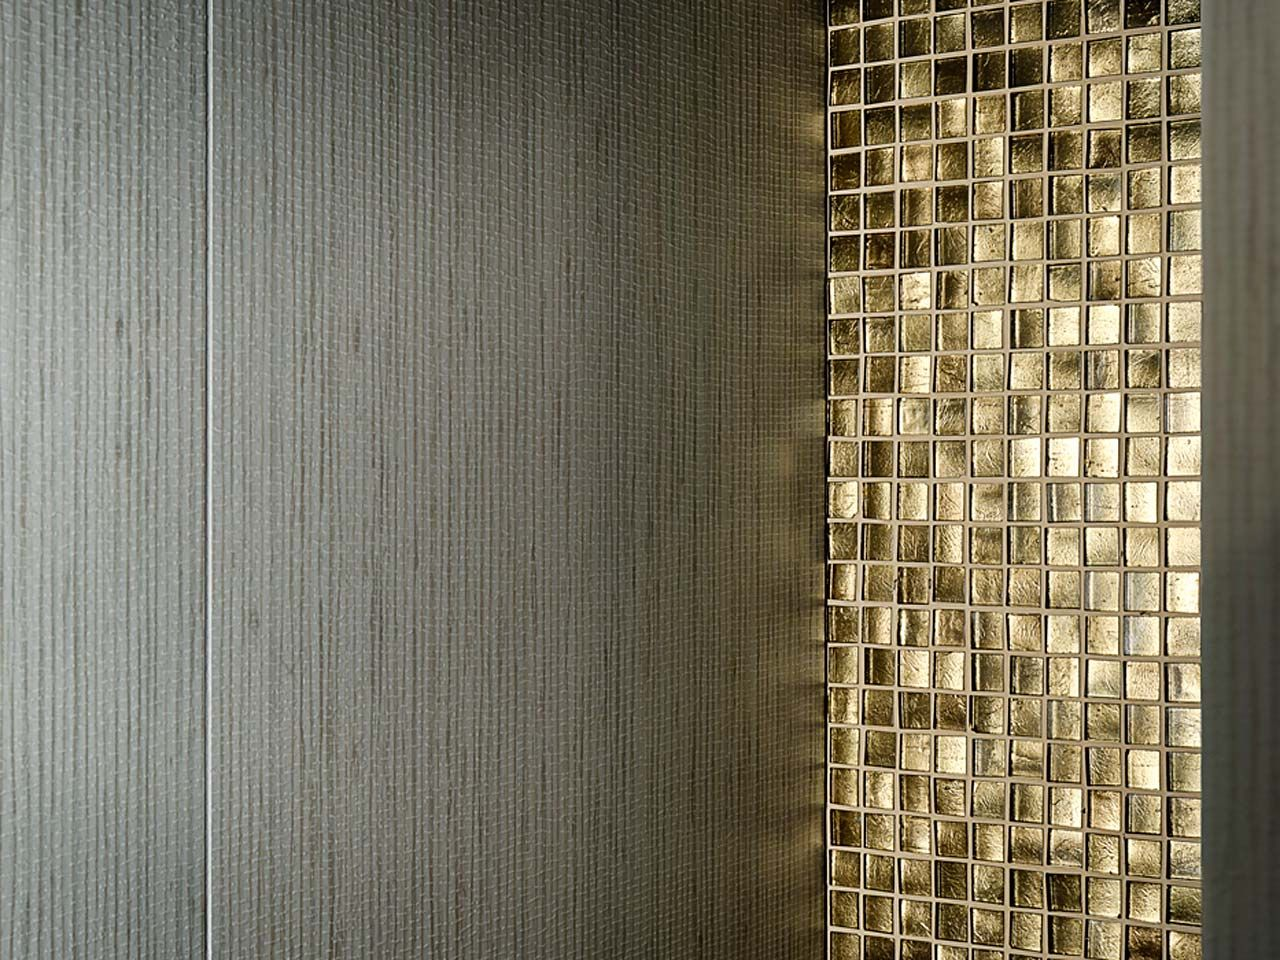 Arabia gold metal effect wall tiles by porcelanosa azulejos efecto metalico arabia gold de for Porcelanosa tiles